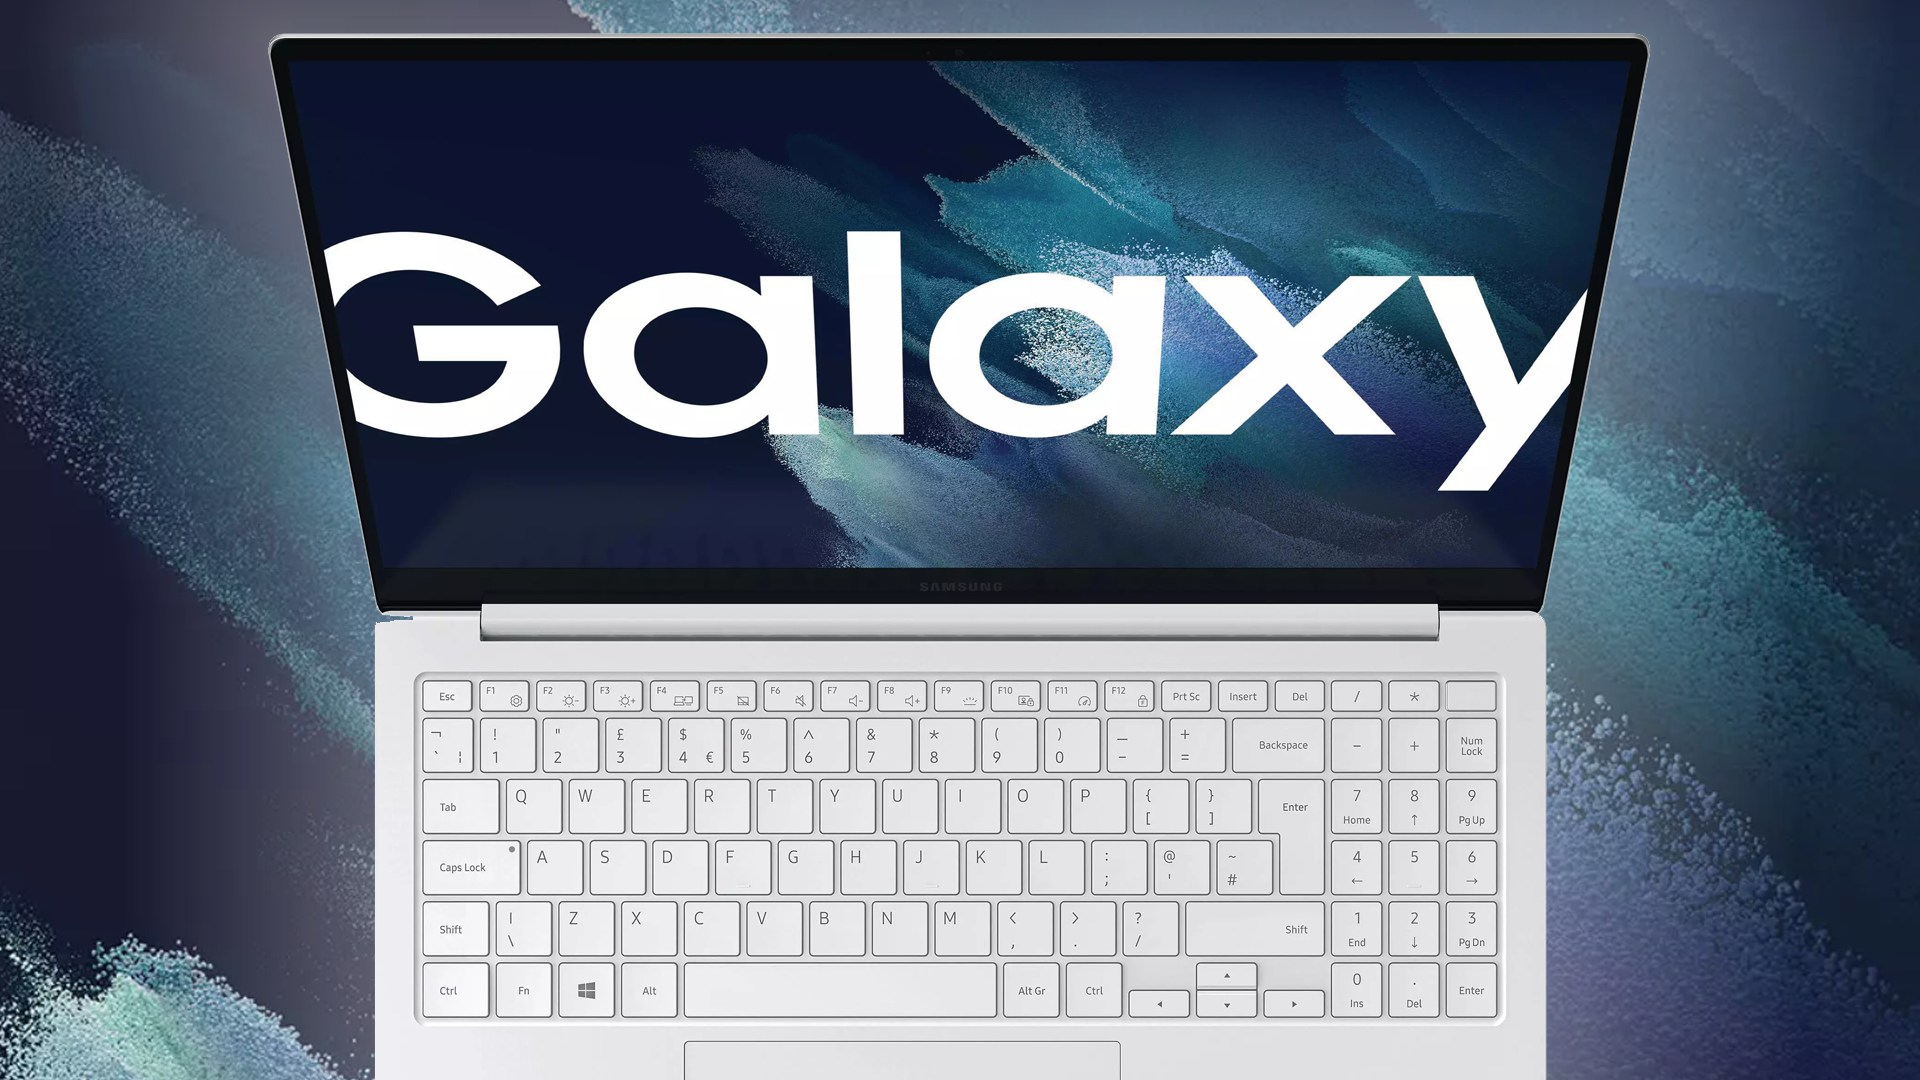 Samsung, Pc, Notebook, Laptop, Galaxy, 2-in-1, Samsung Galaxy Book Pro 360, Samsung Galaxy Book Pro